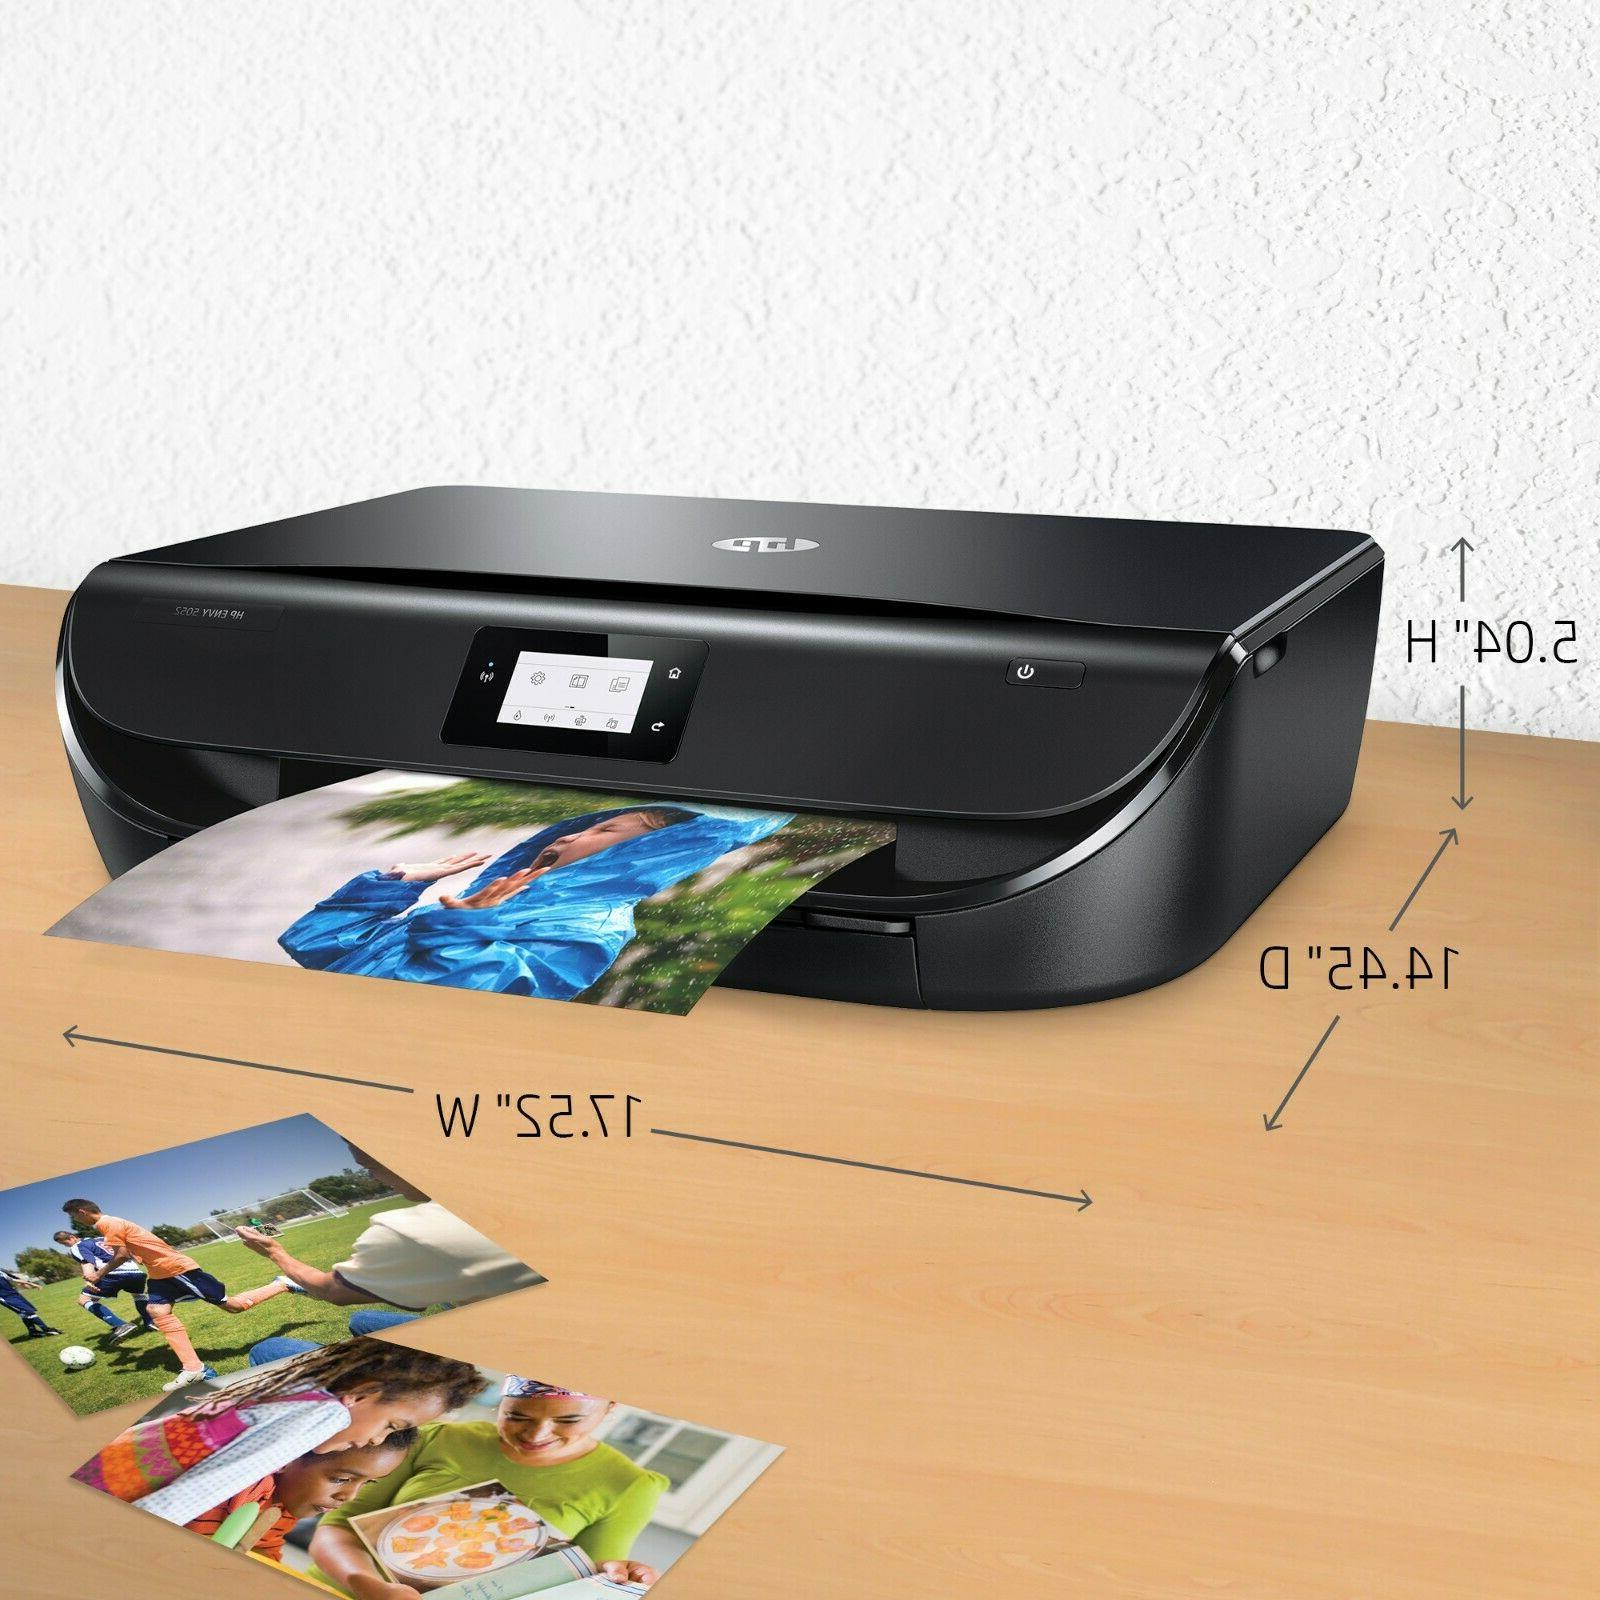 HP Inkjet Wireless Printer Copier Scanner ✅✅